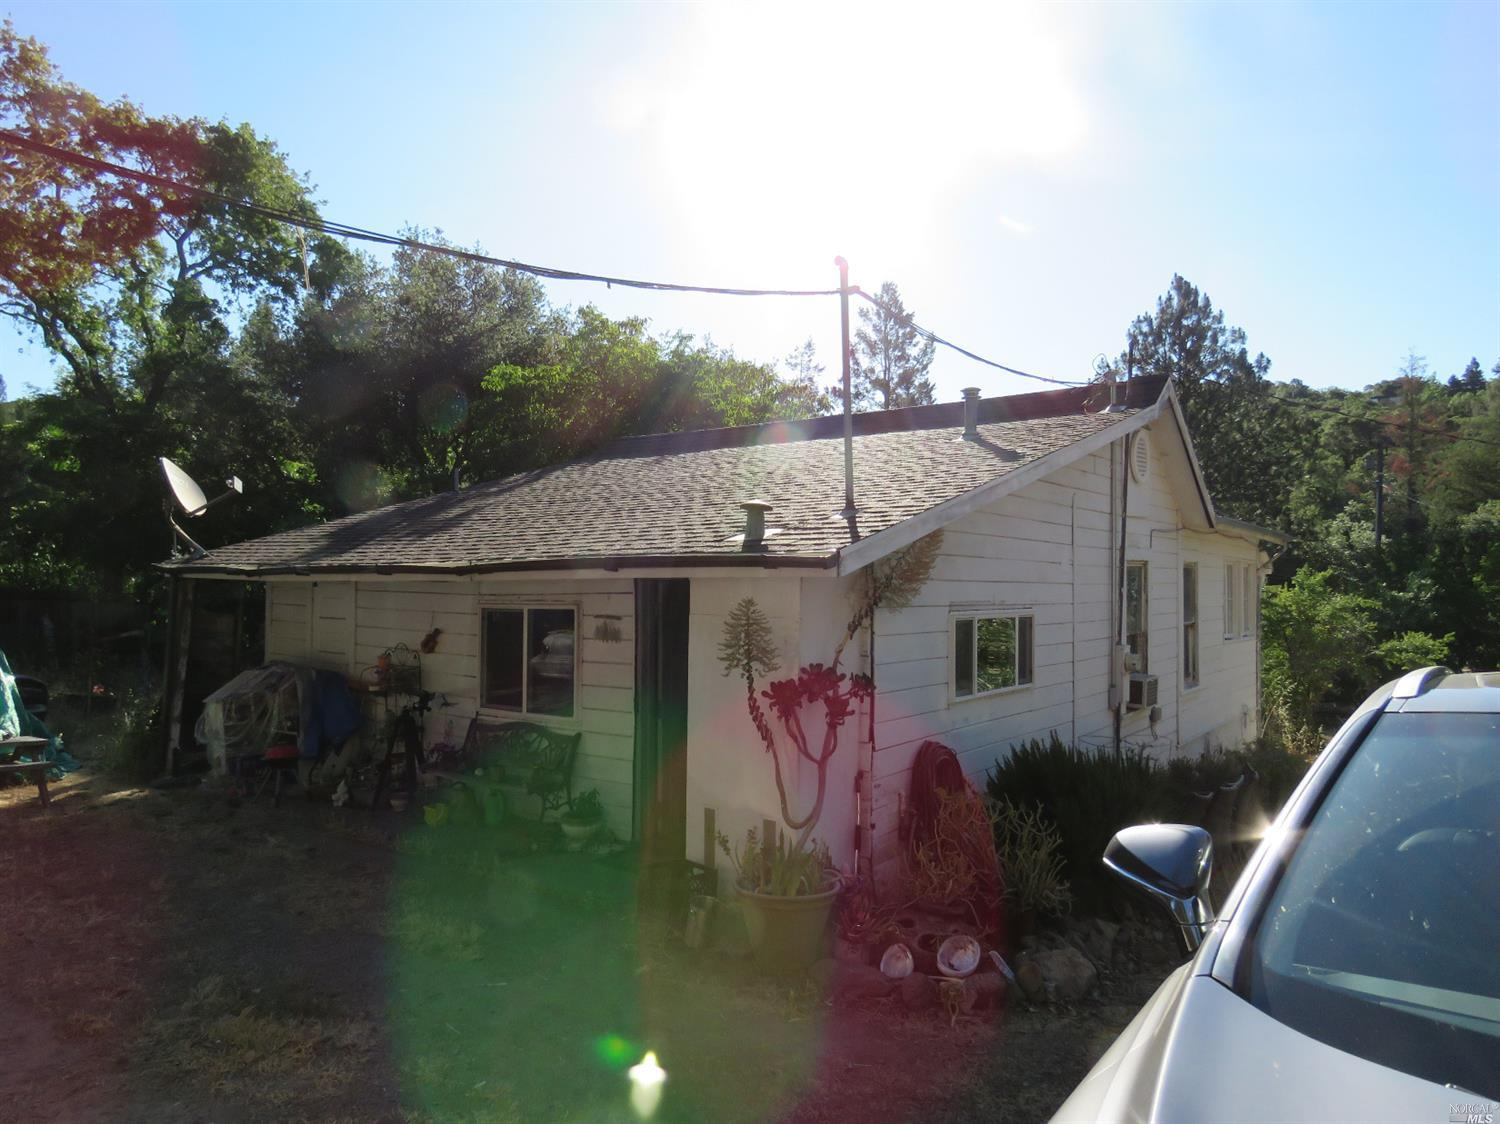 This two bedroom, one bathroom farm style home is located just minutes from downtown Sonoma. This property features over an acre of land and a charming barn. You will love this lot full of trees and opportunities. The residence itself is in need of upgrades. Location, Location, Location.